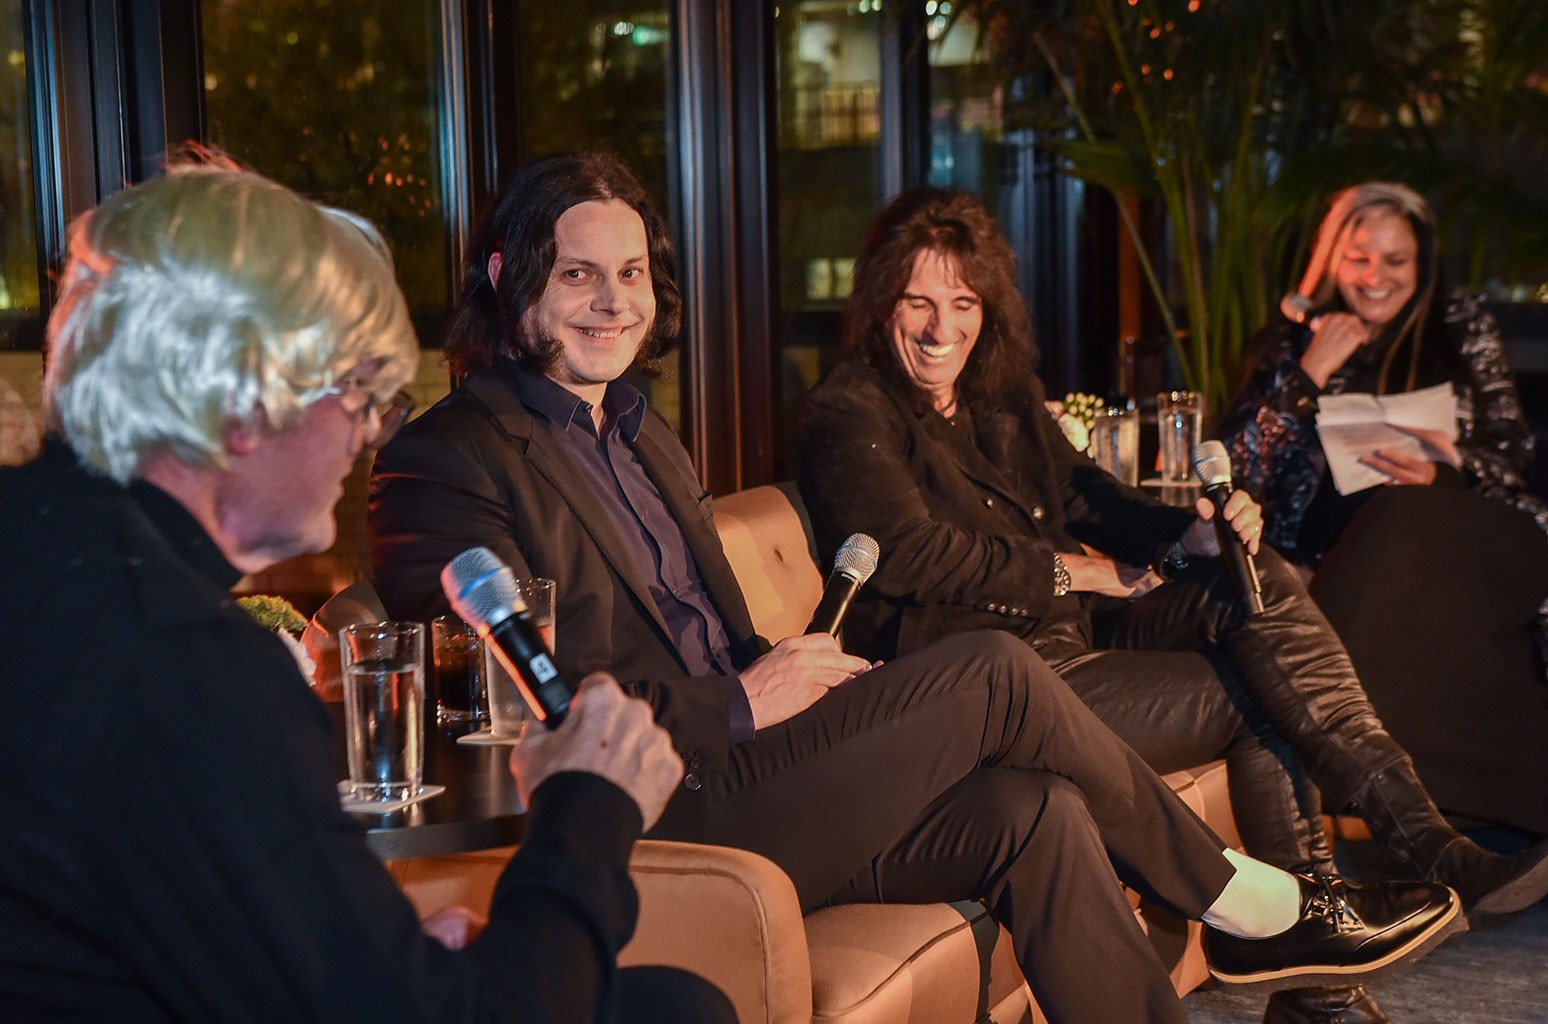 Kirk Gibson, Jack White and Alice Cooper